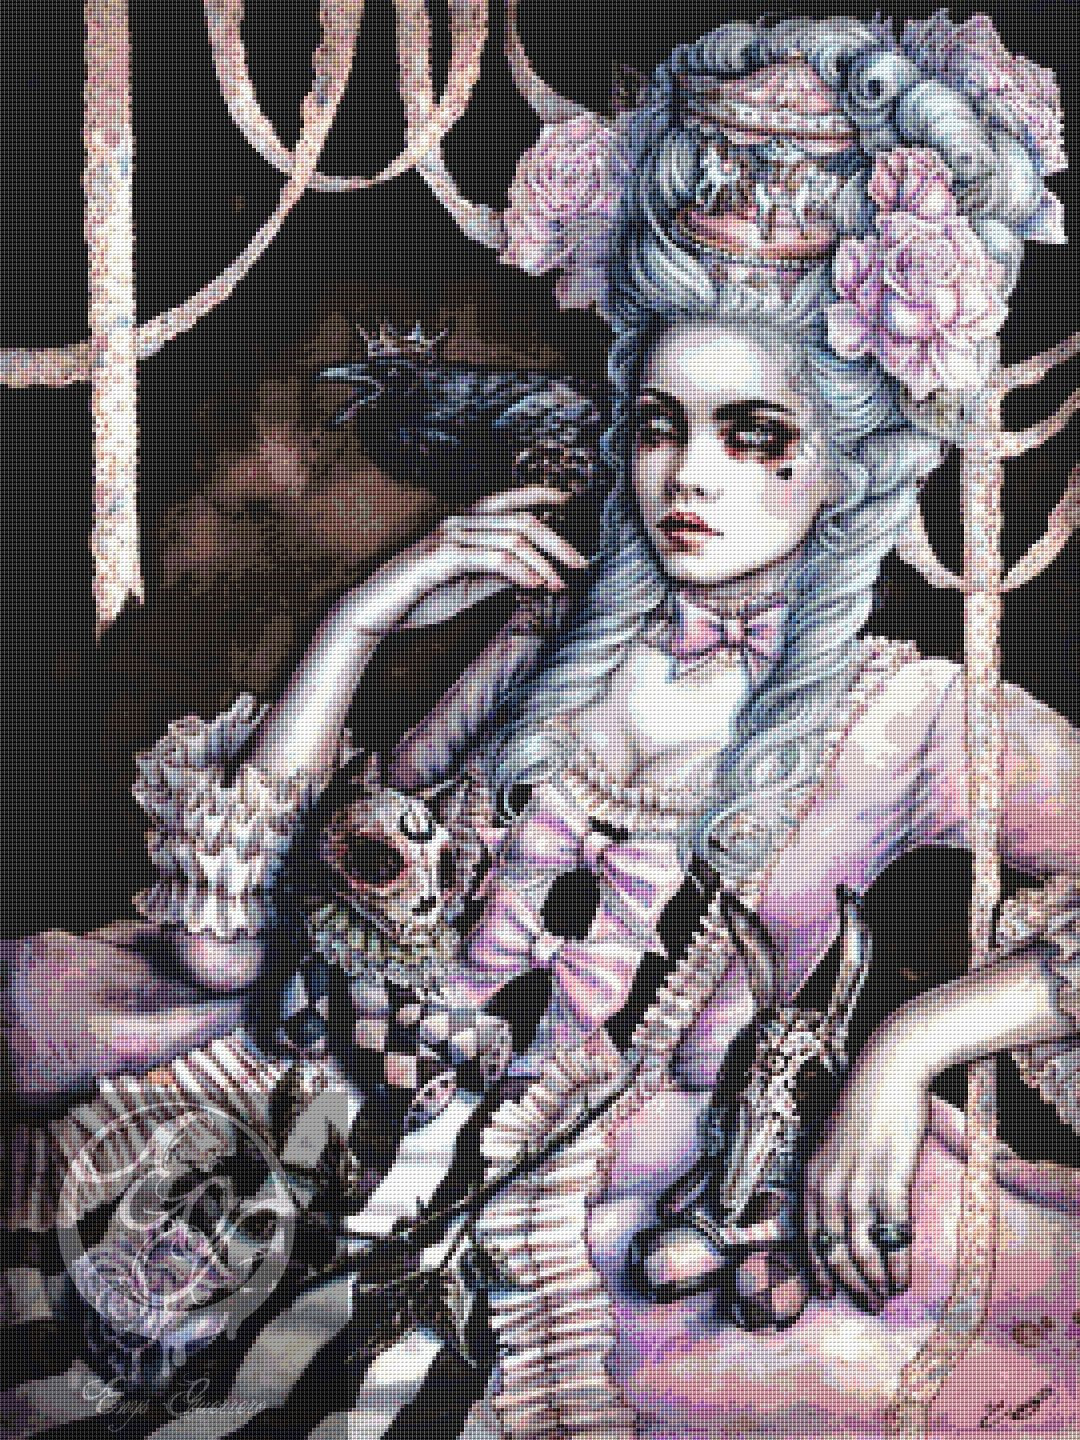 DMC Fantasy Rococo Dream Counted Cross Stitch Kit Raven Goth UK